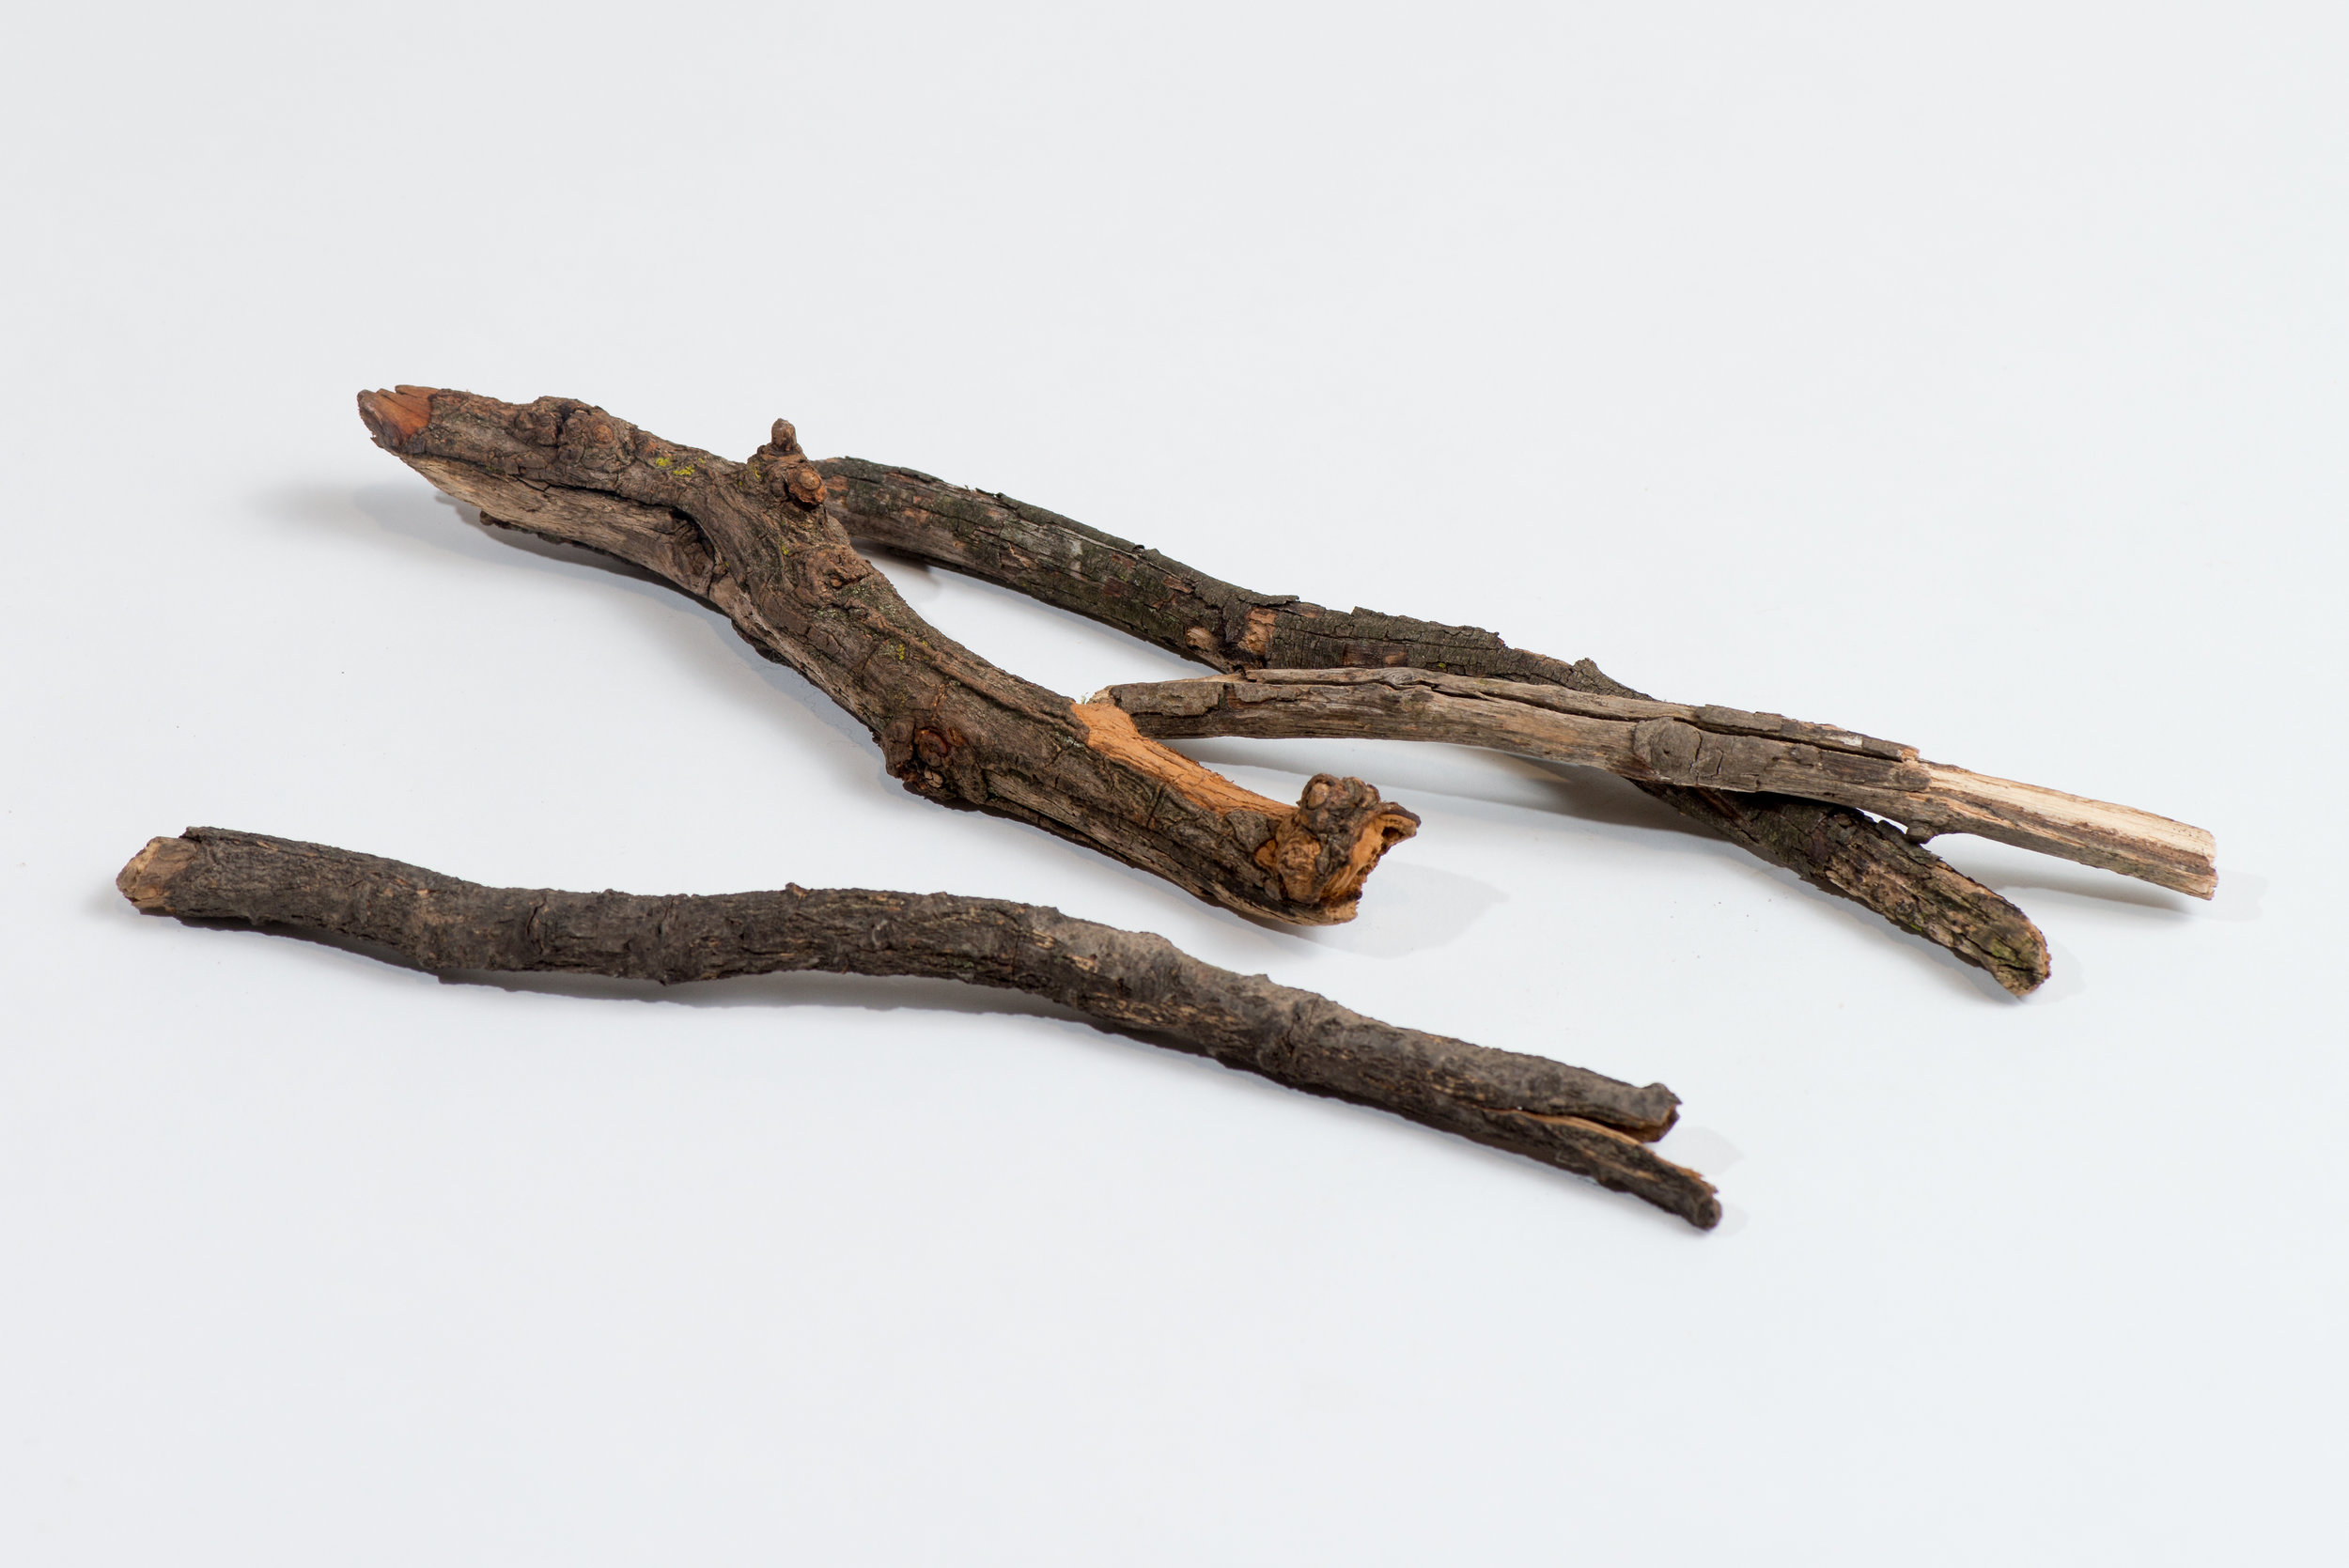 Kym Maxwell,  Medieval Tools: Swords and Guns from the Collection of the Museum of Anticipation at Dandenong Primary School (Site DPS various locations internal school grounds). Materials: sticks and branch, 2018, inkjet print, 30cms x 40cms.